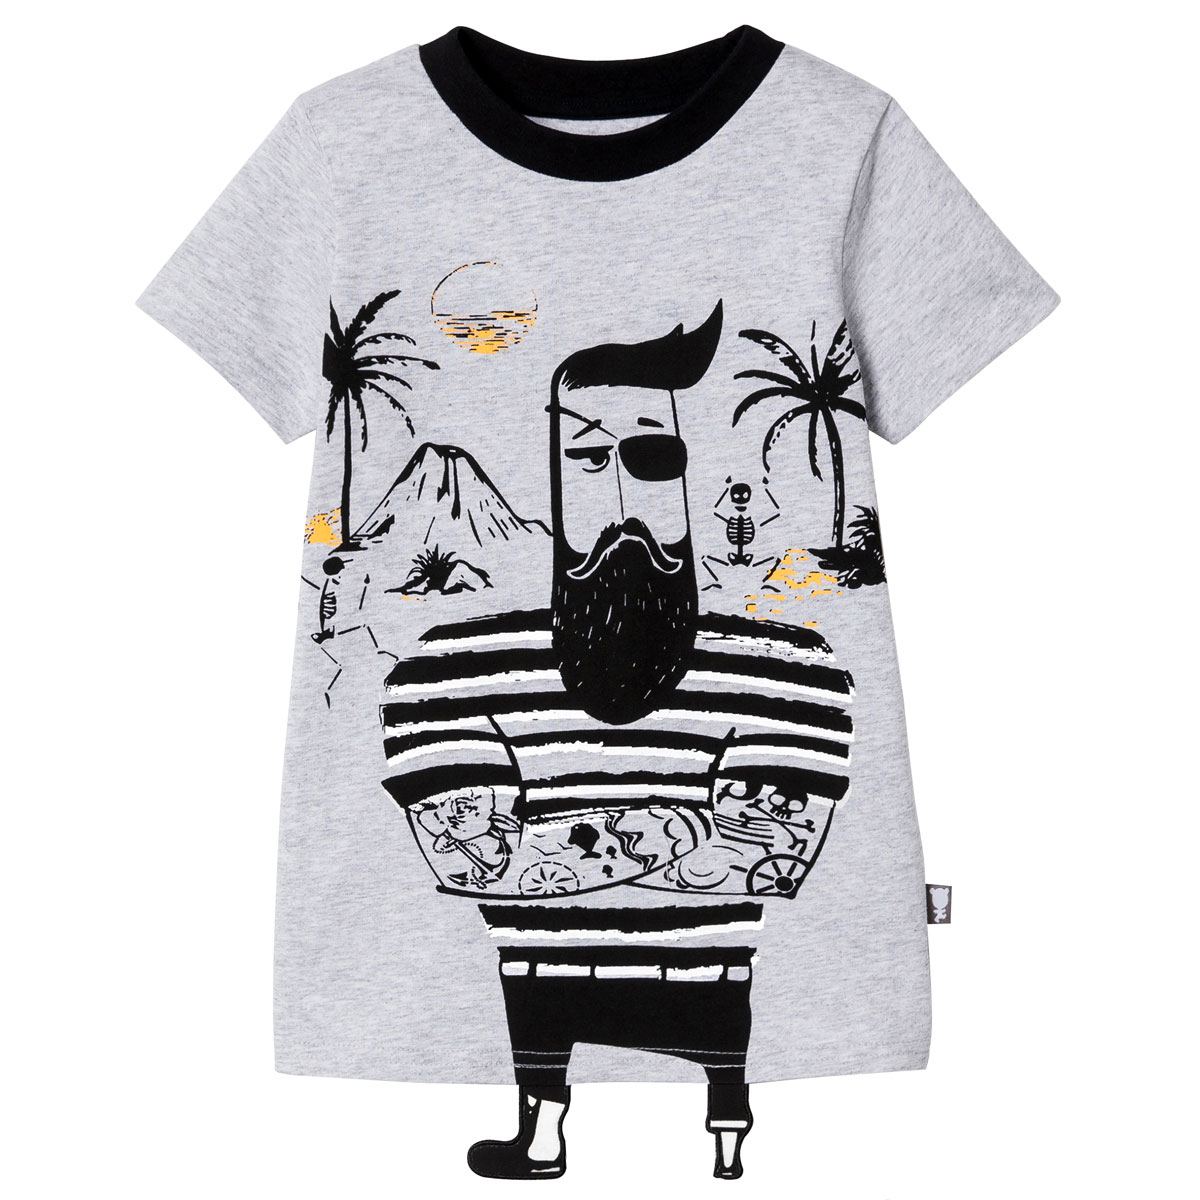 pyjama-t-shirt-short-2-pieces-enfant-garcon-explorateur-haut